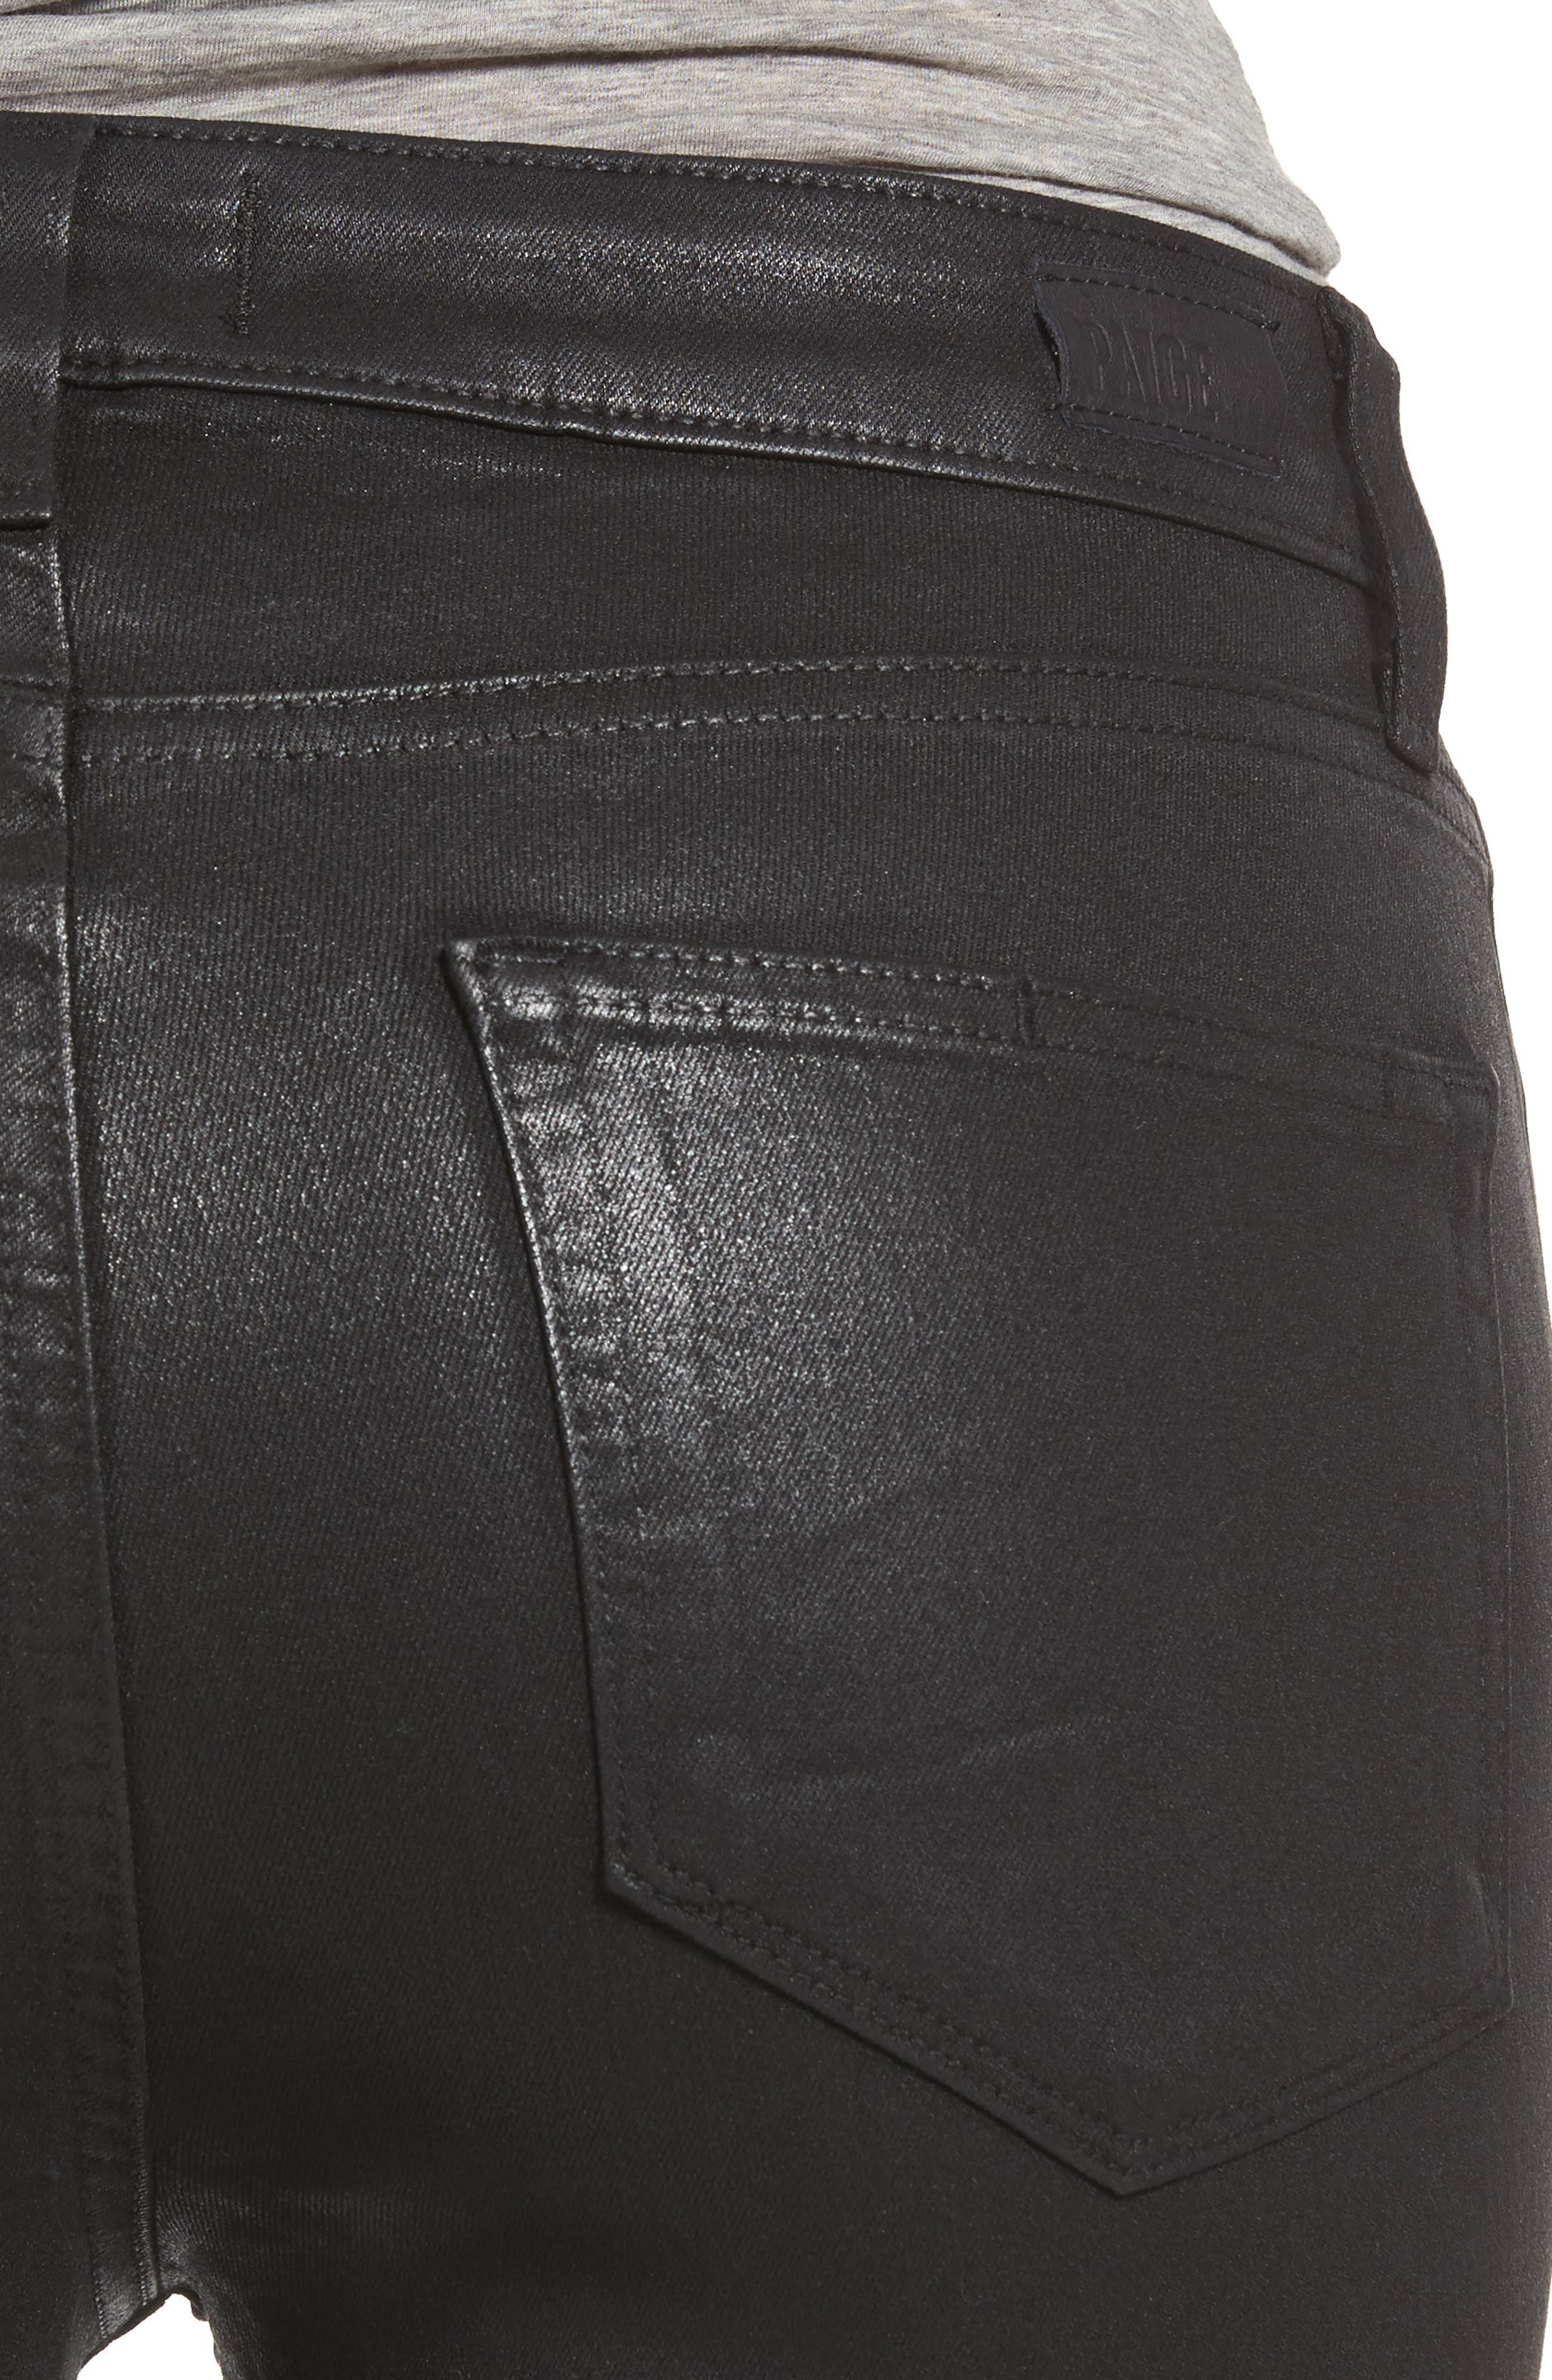 Transcend - Hoxton High Waist Ankle Skinny Jeans,                             Alternate thumbnail 4, color,                             LUXE BLACK COATED